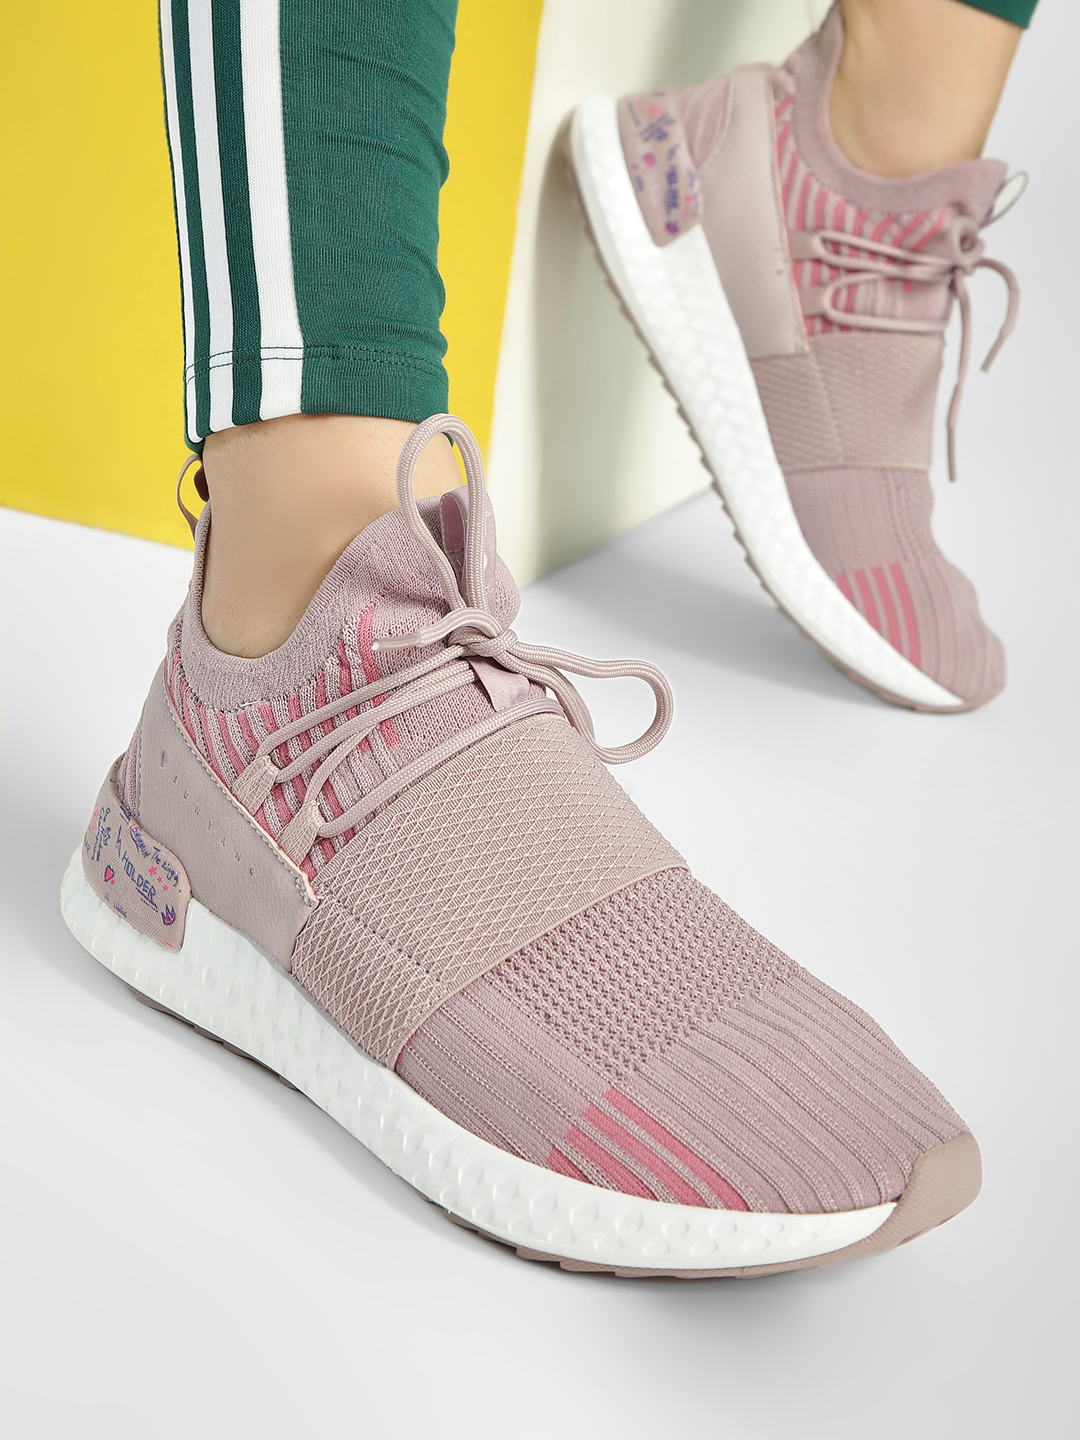 361 Degree Pink Printed Tab Knitted Sockliner Shoes 1